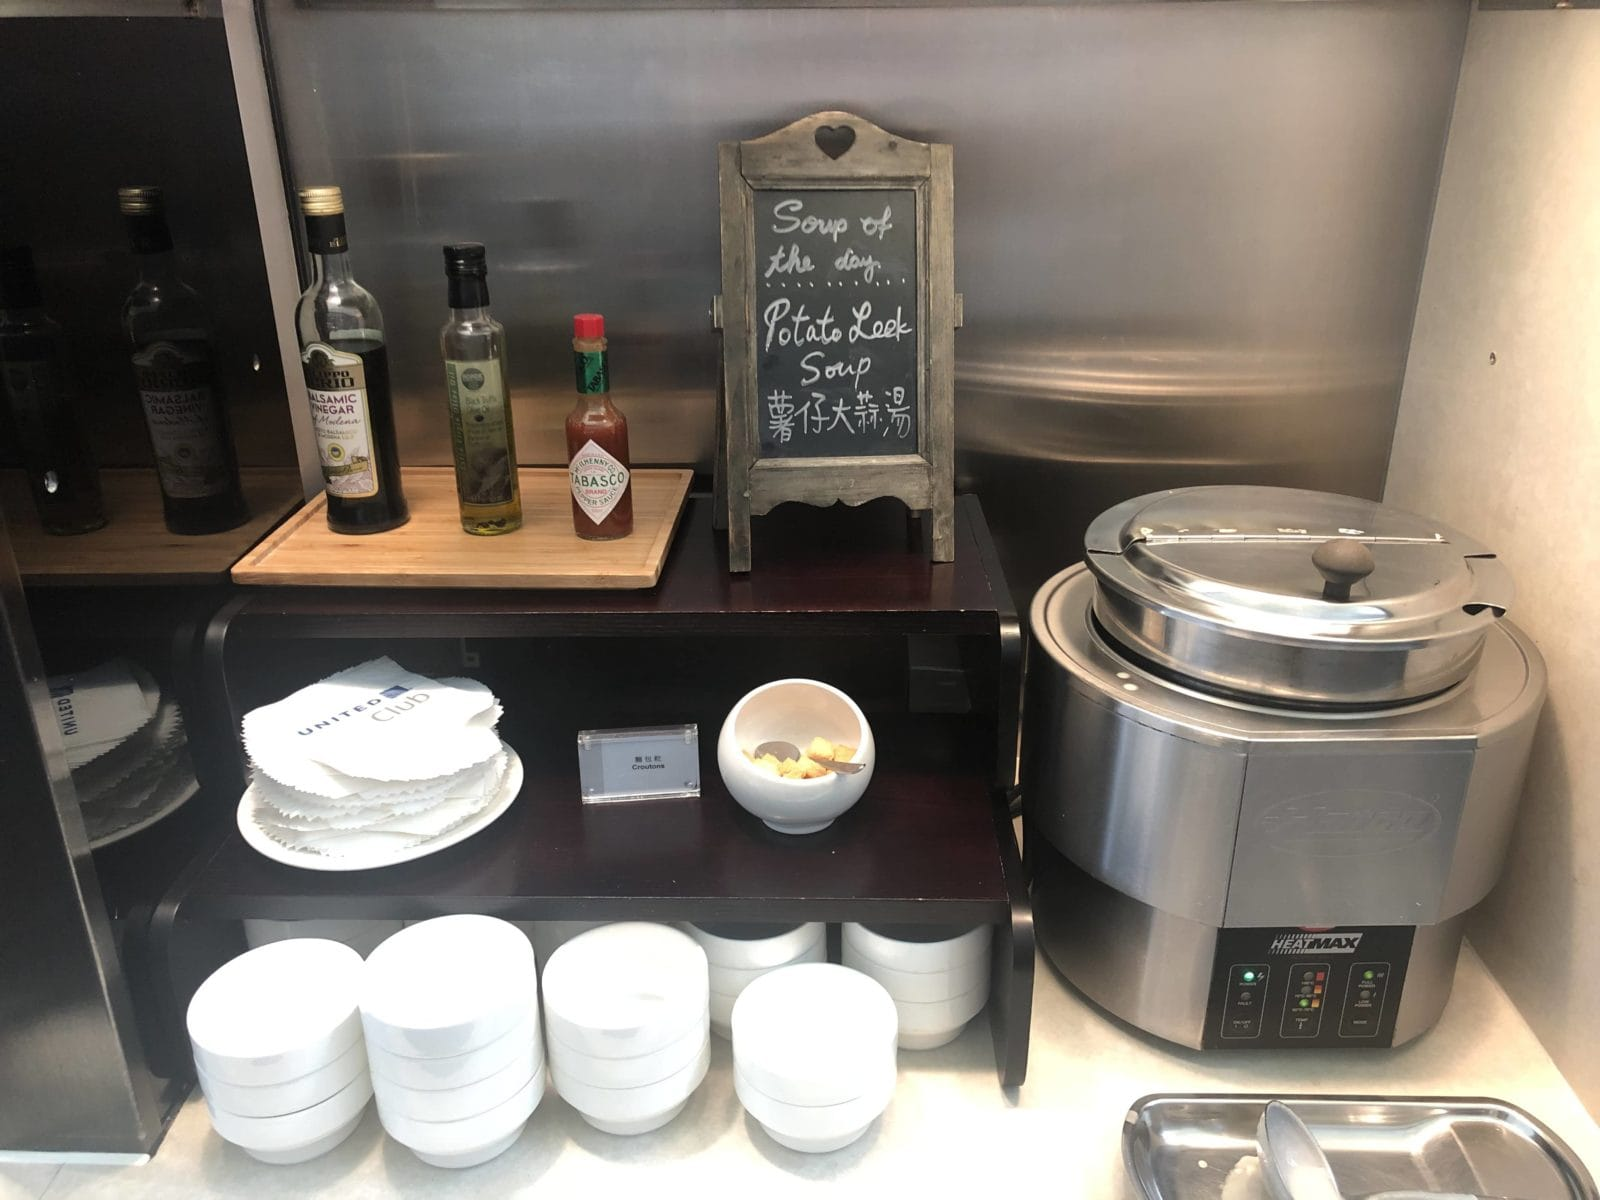 United Club Hong Kong Suppe des Tages